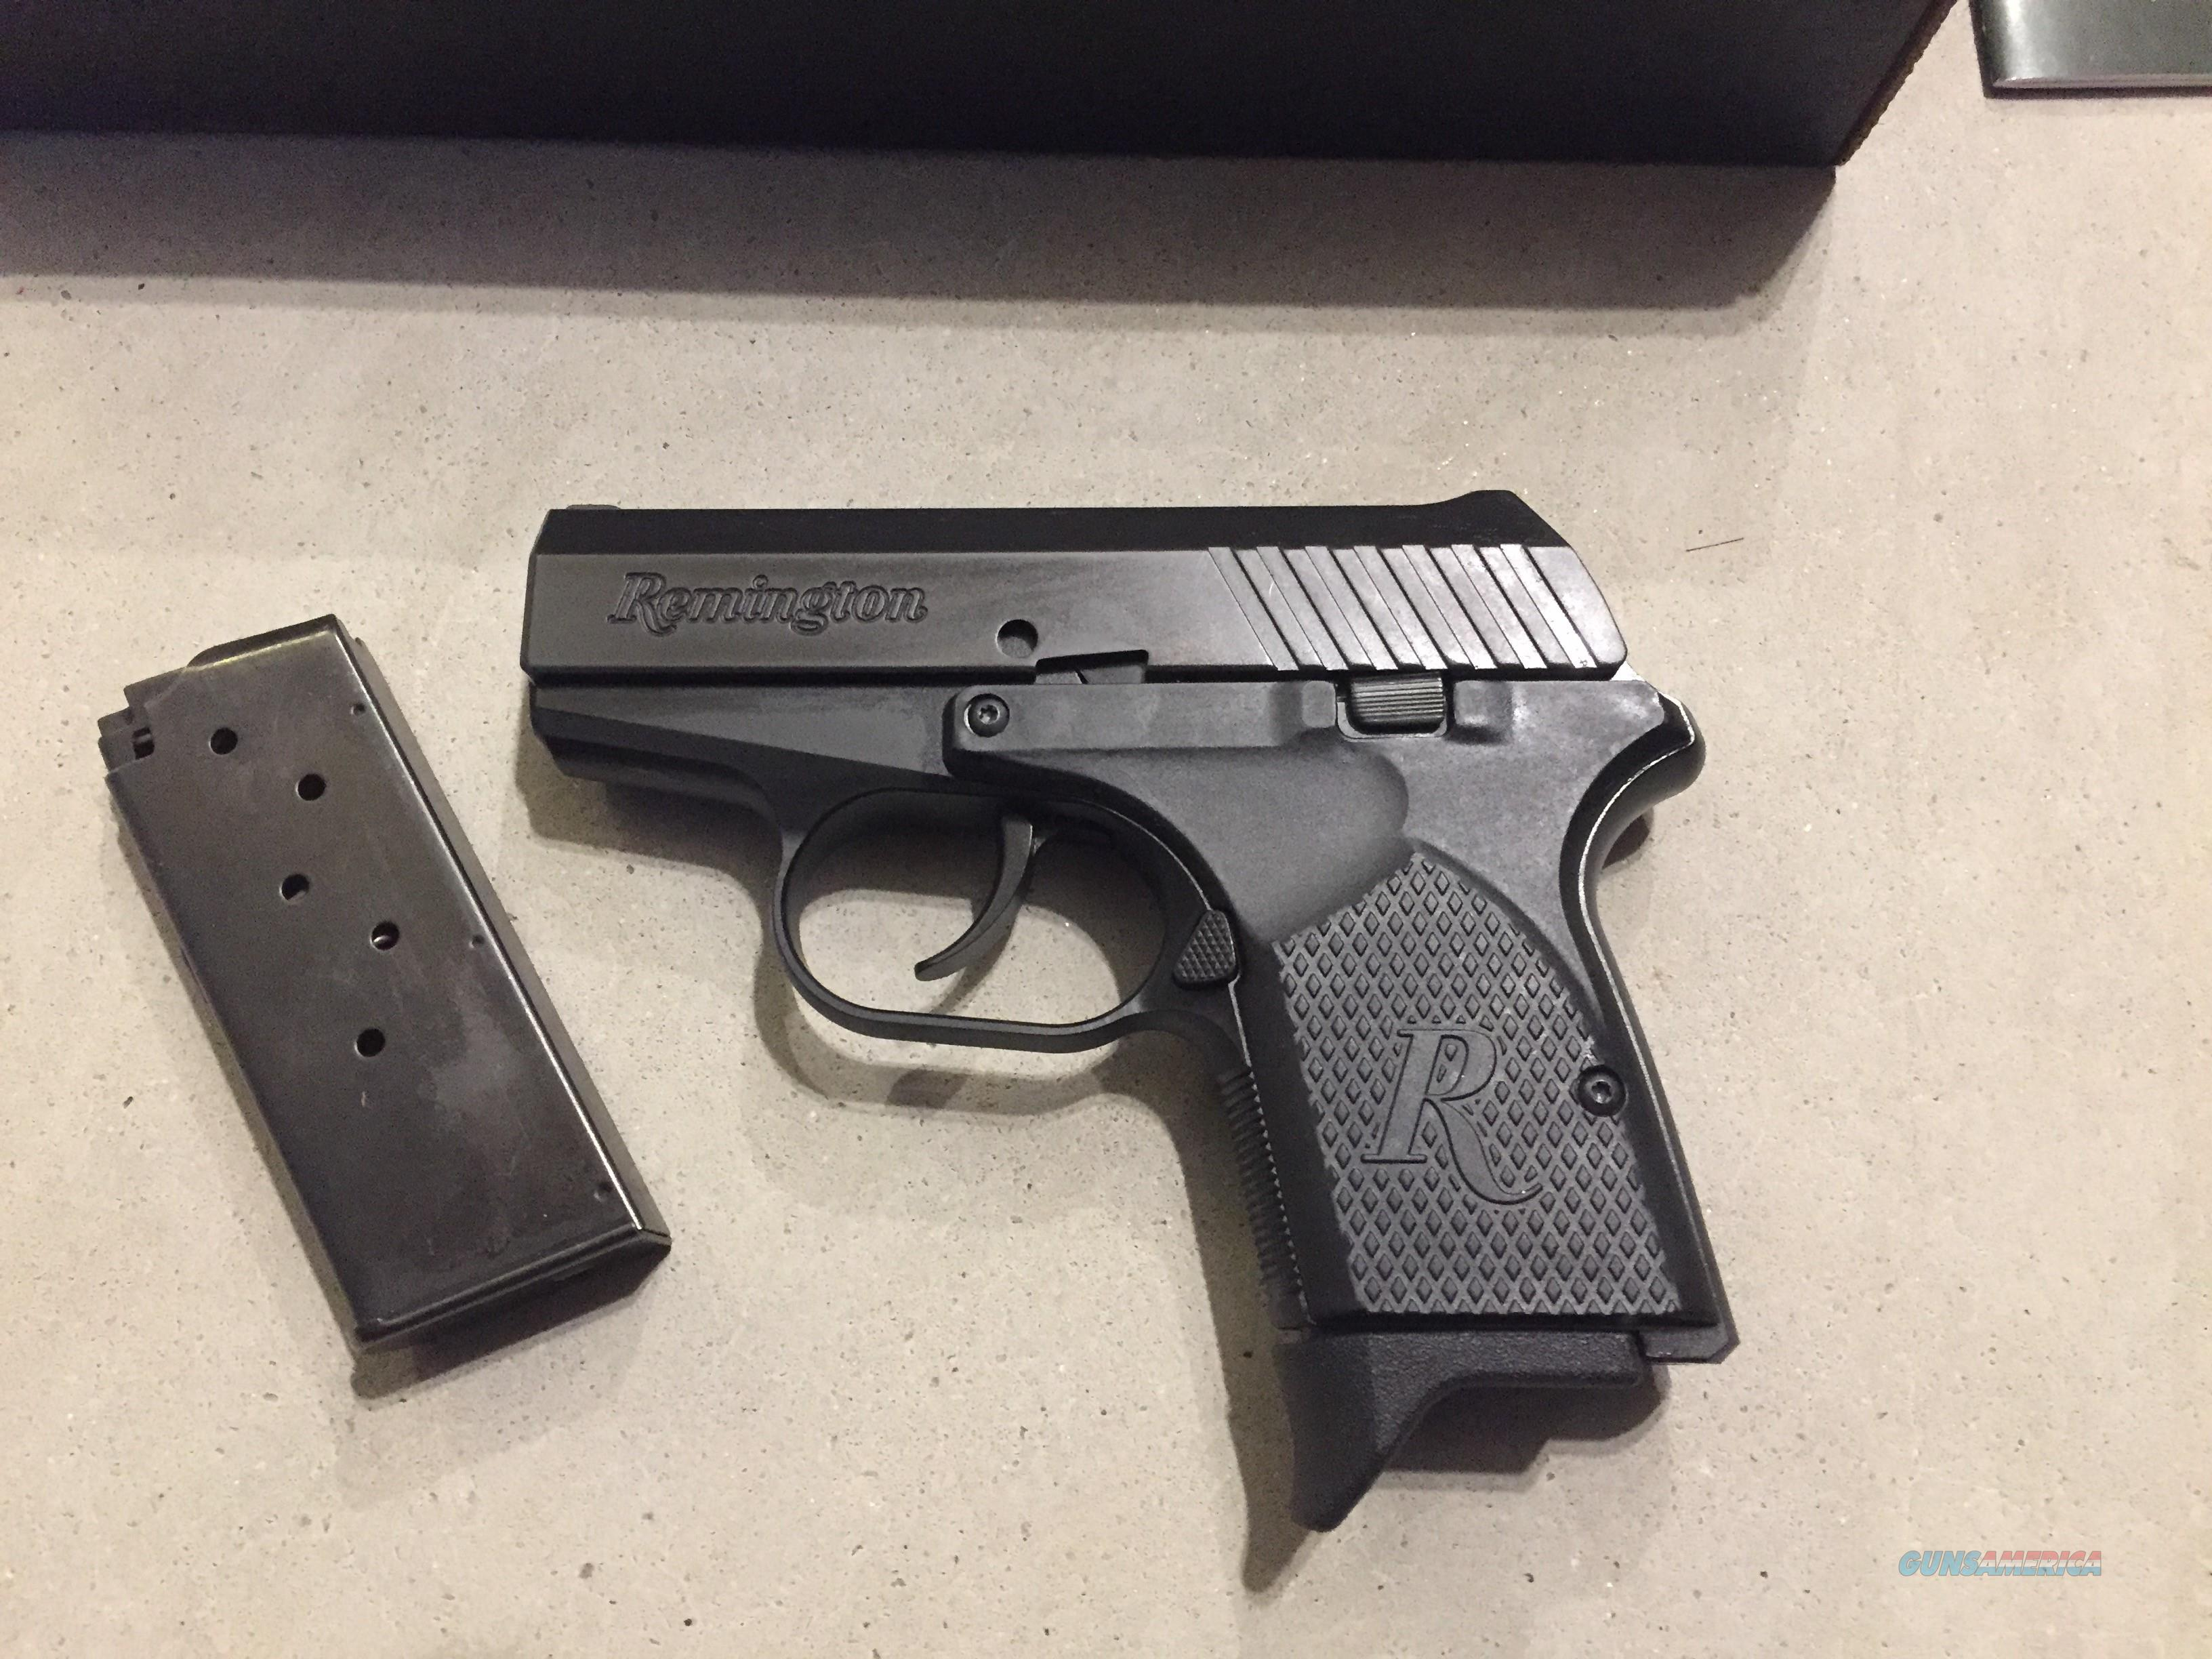 Remington RM380 .380 acp New in Box (no card fees added)  Guns > Pistols > Remington Pistols - Modern > RM380